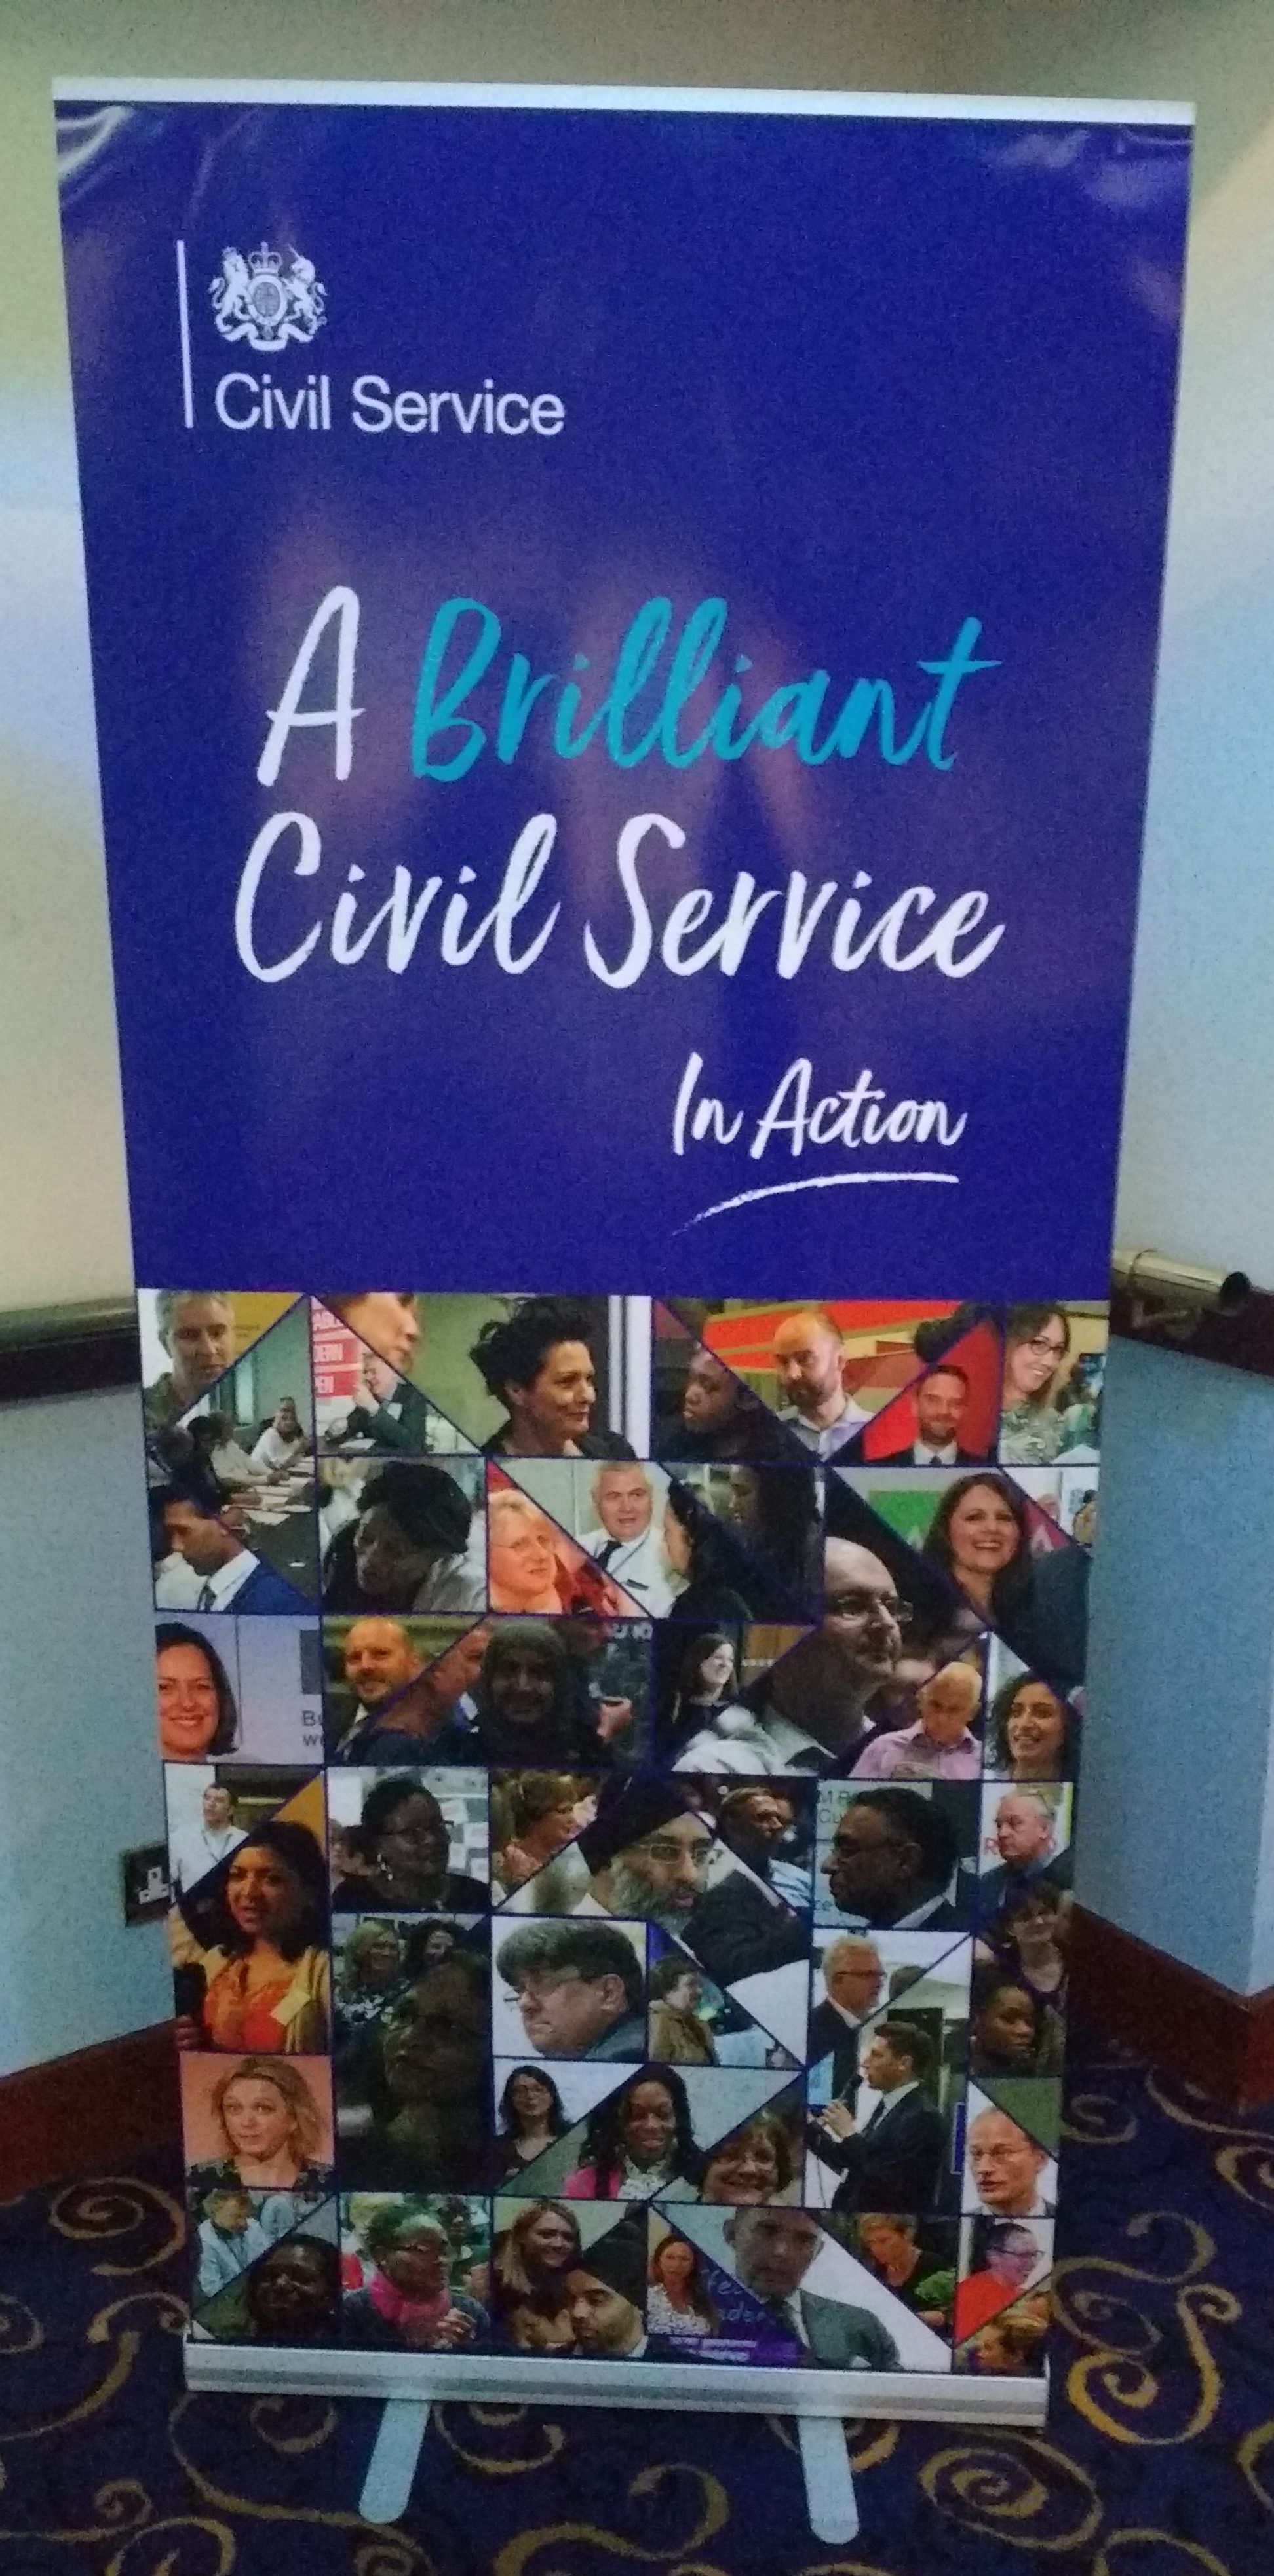 'A Brilliant Civil Service In Action' pop-up banner